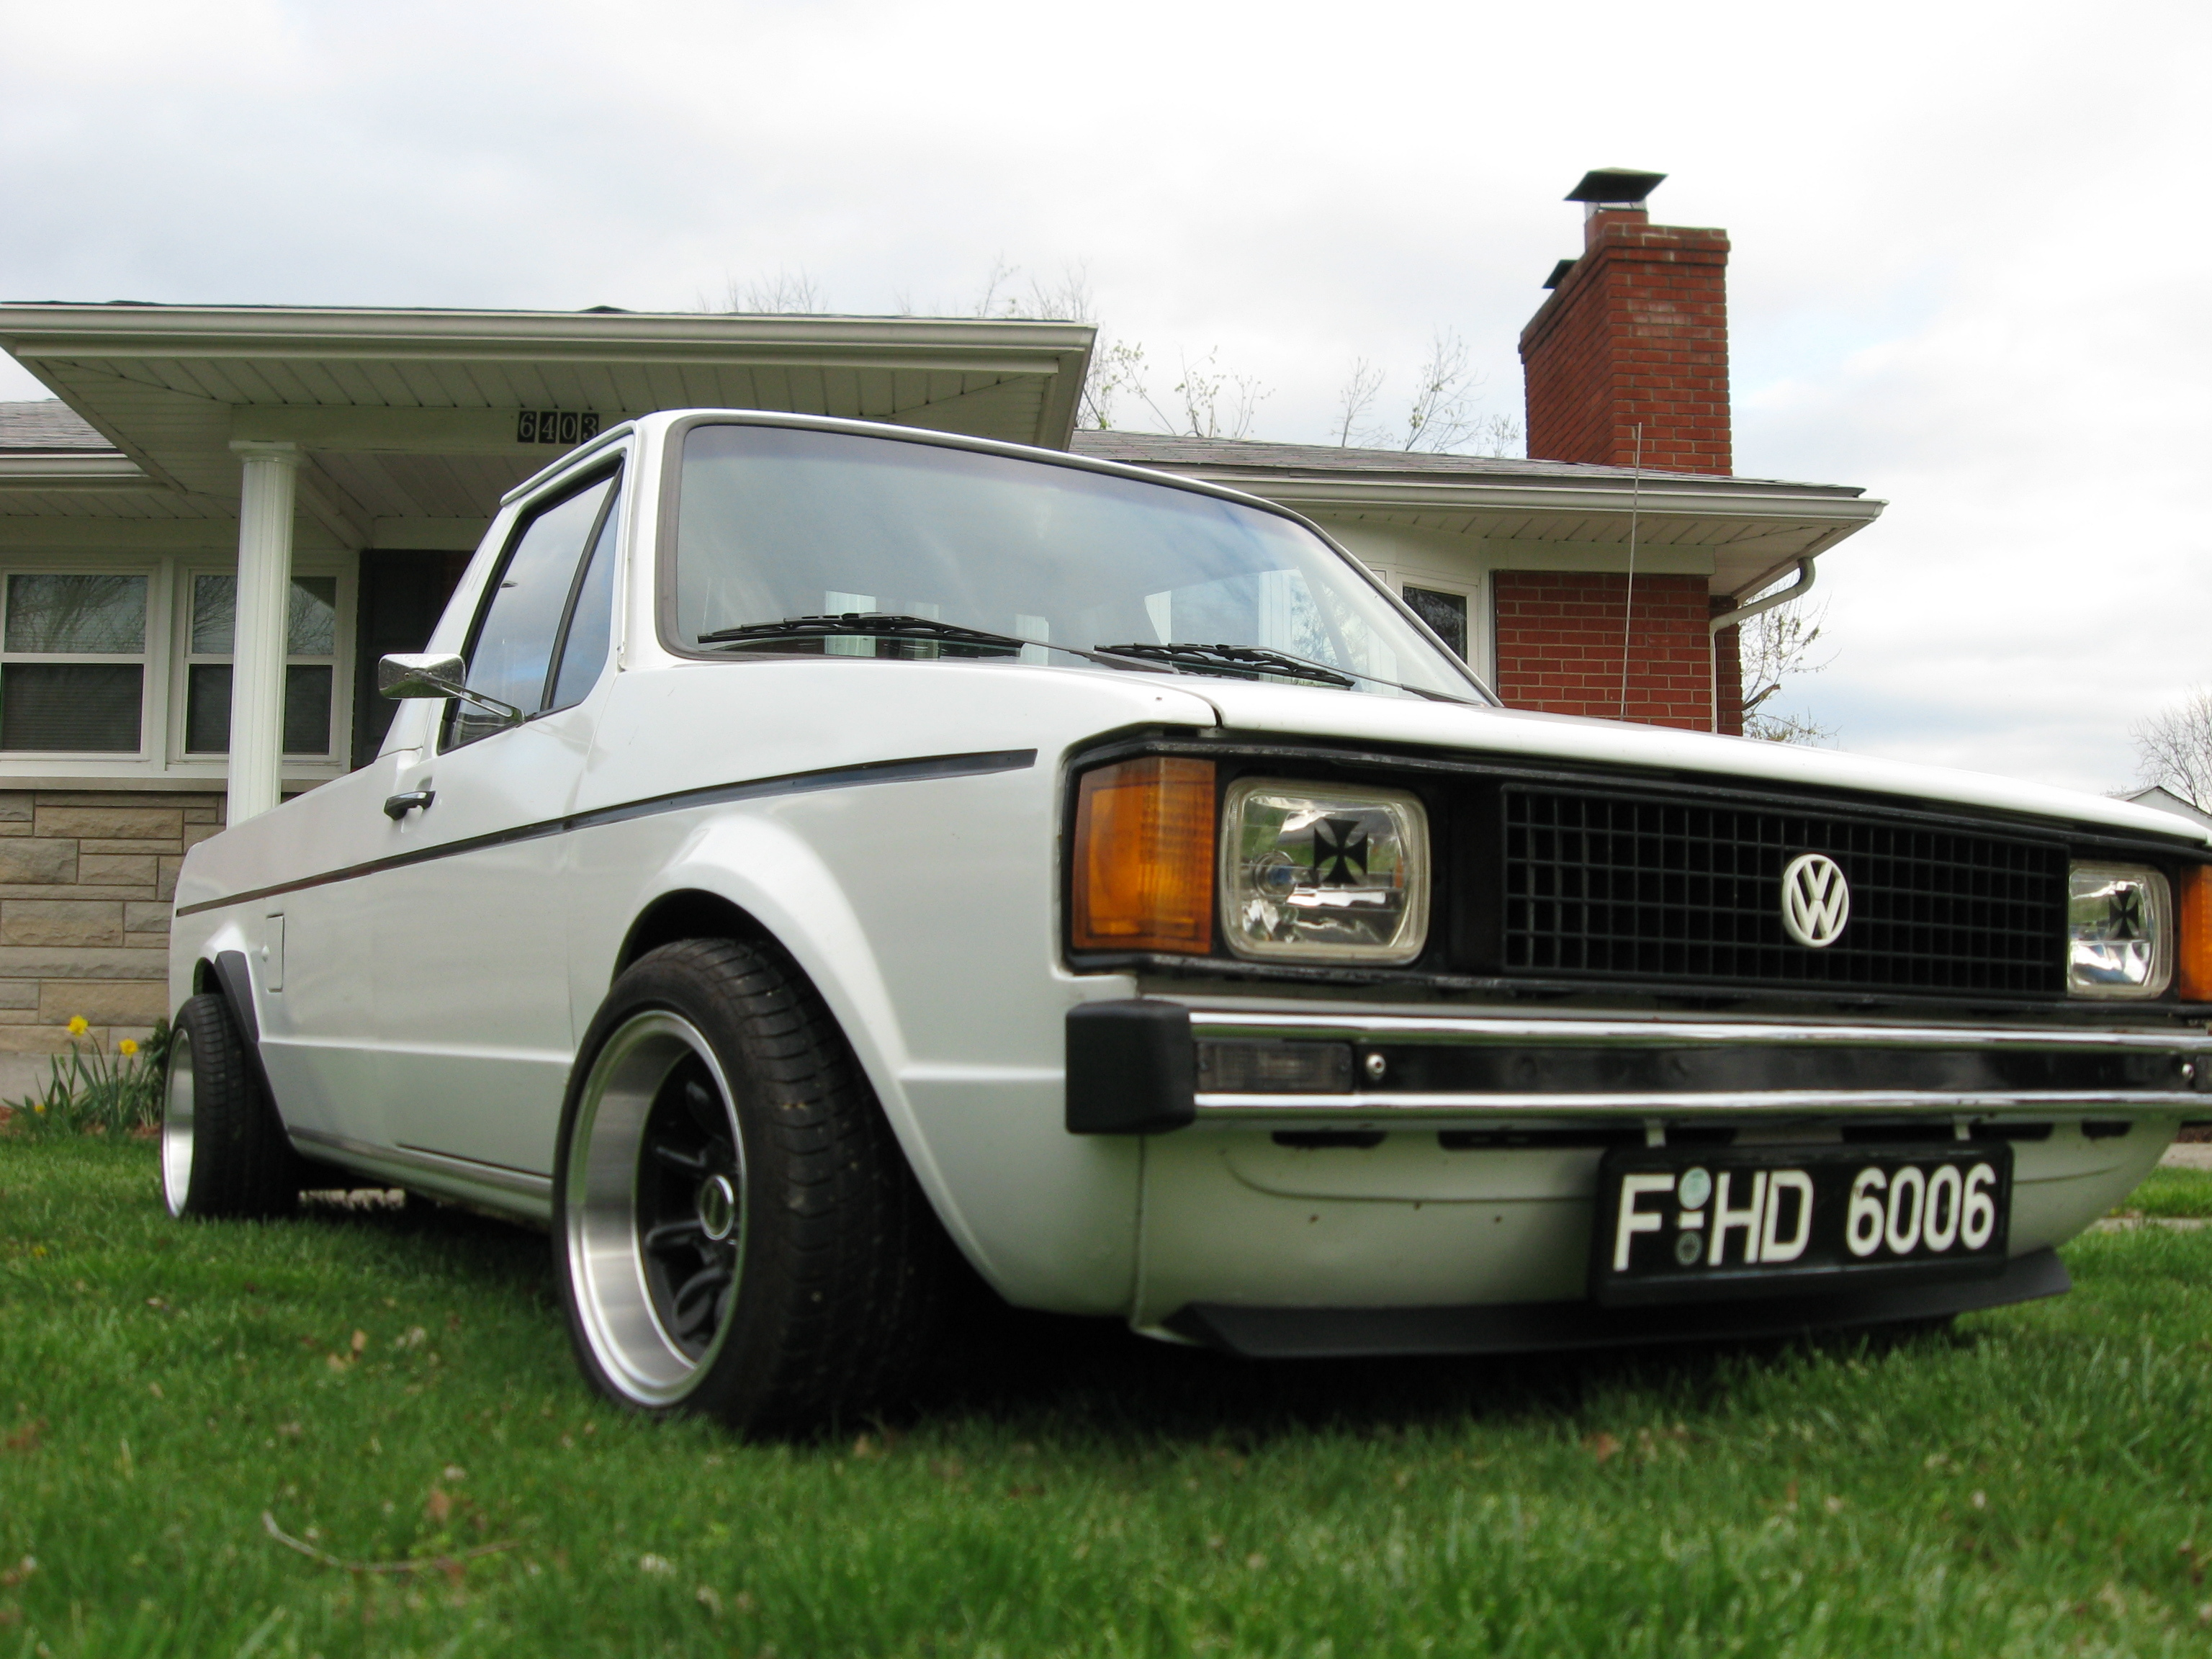 VdubCaddy's 1982 Volkswagen Caddy